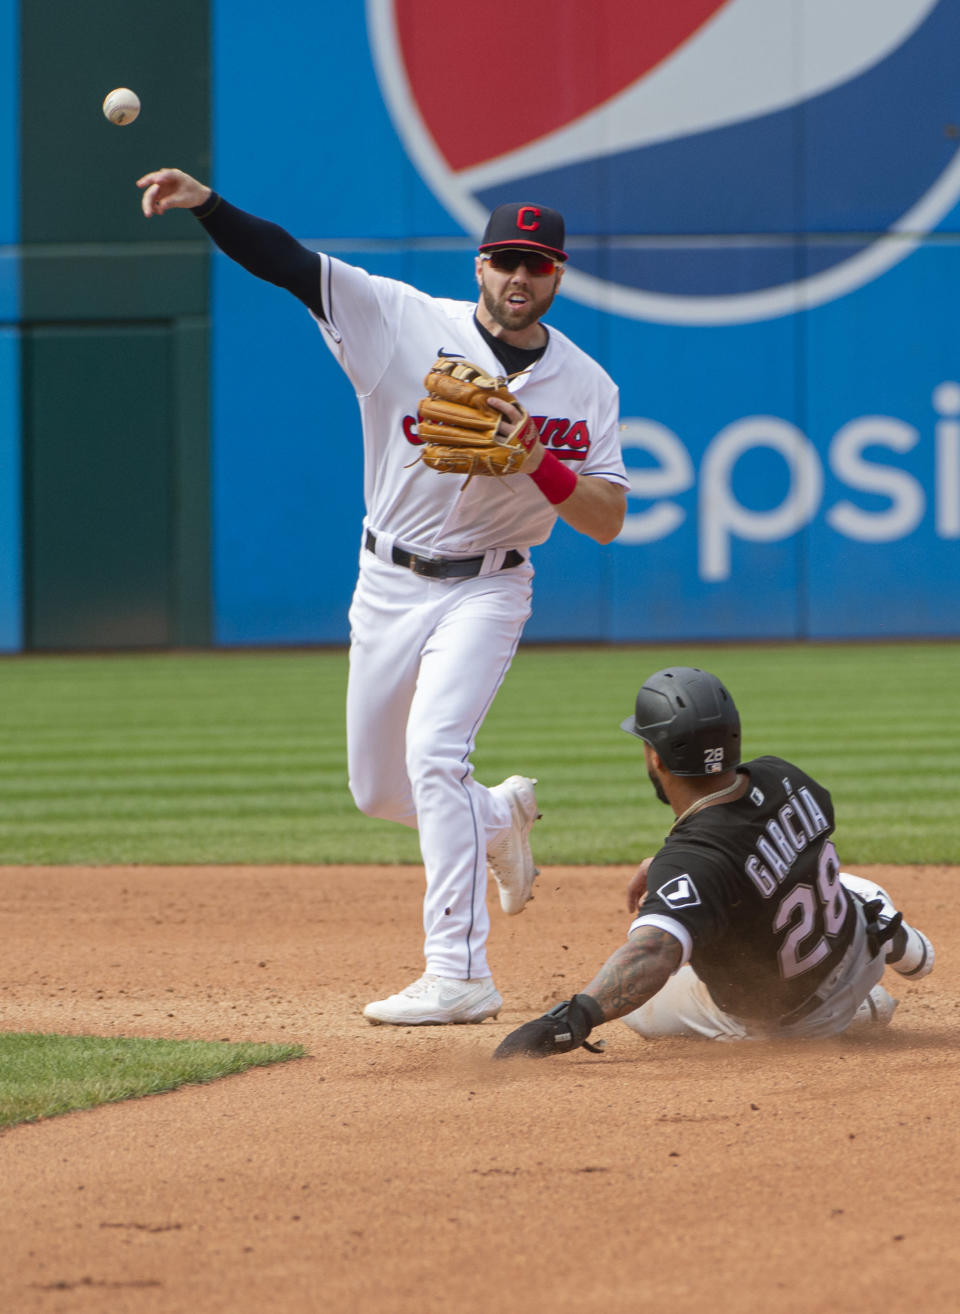 Cleveland Indians' Owen Miller, left, throws to first base to complete a double play after forcing out Chicago White Sox's Leury Garcia, right, at second during the fourth inning of a baseball game in Cleveland, Sunday, Sept. 26, 2021. (AP Photo/Phil Long)